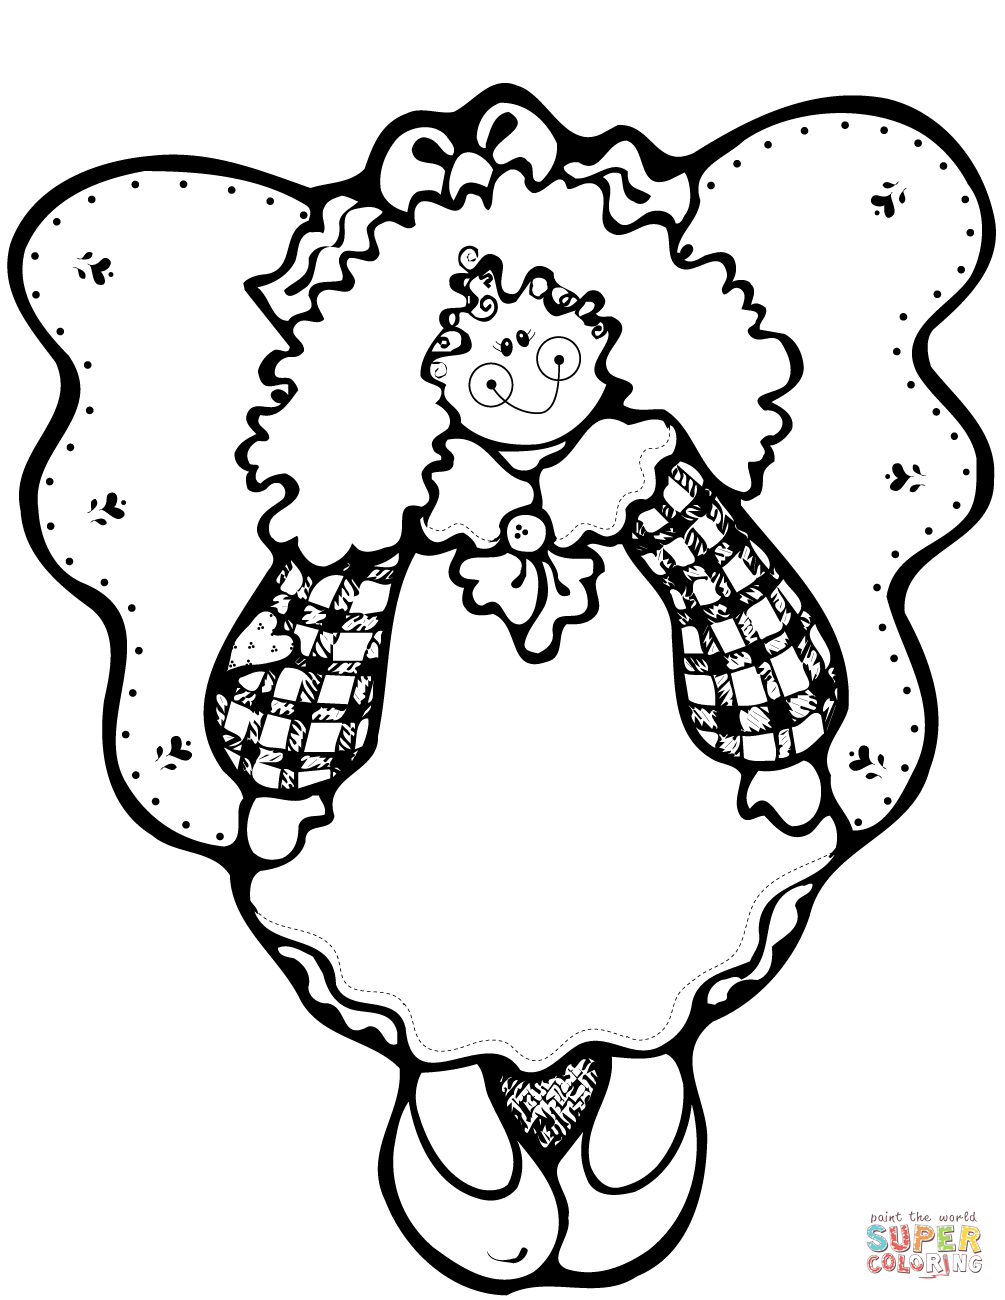 angels clipart coloring page, angels coloring page